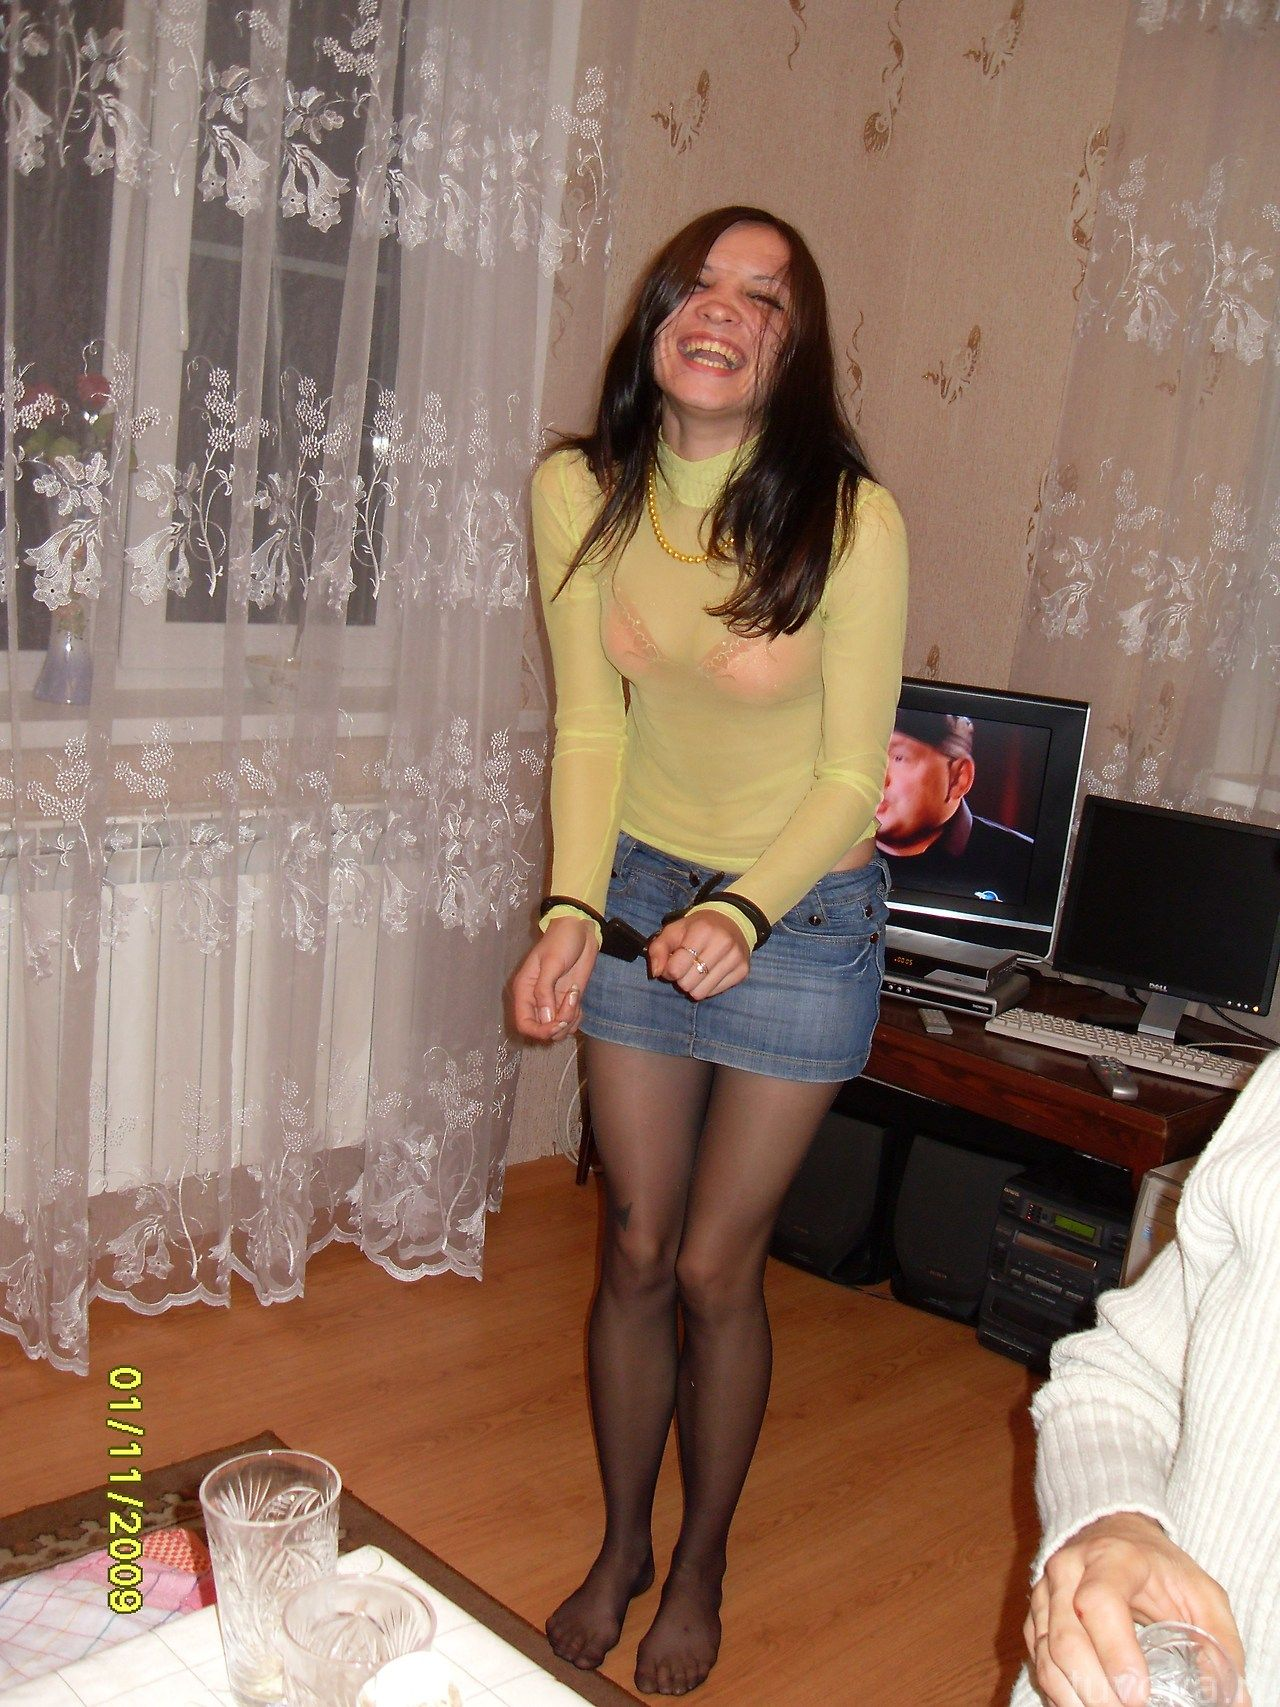 Dress Pantyhose Foreplay